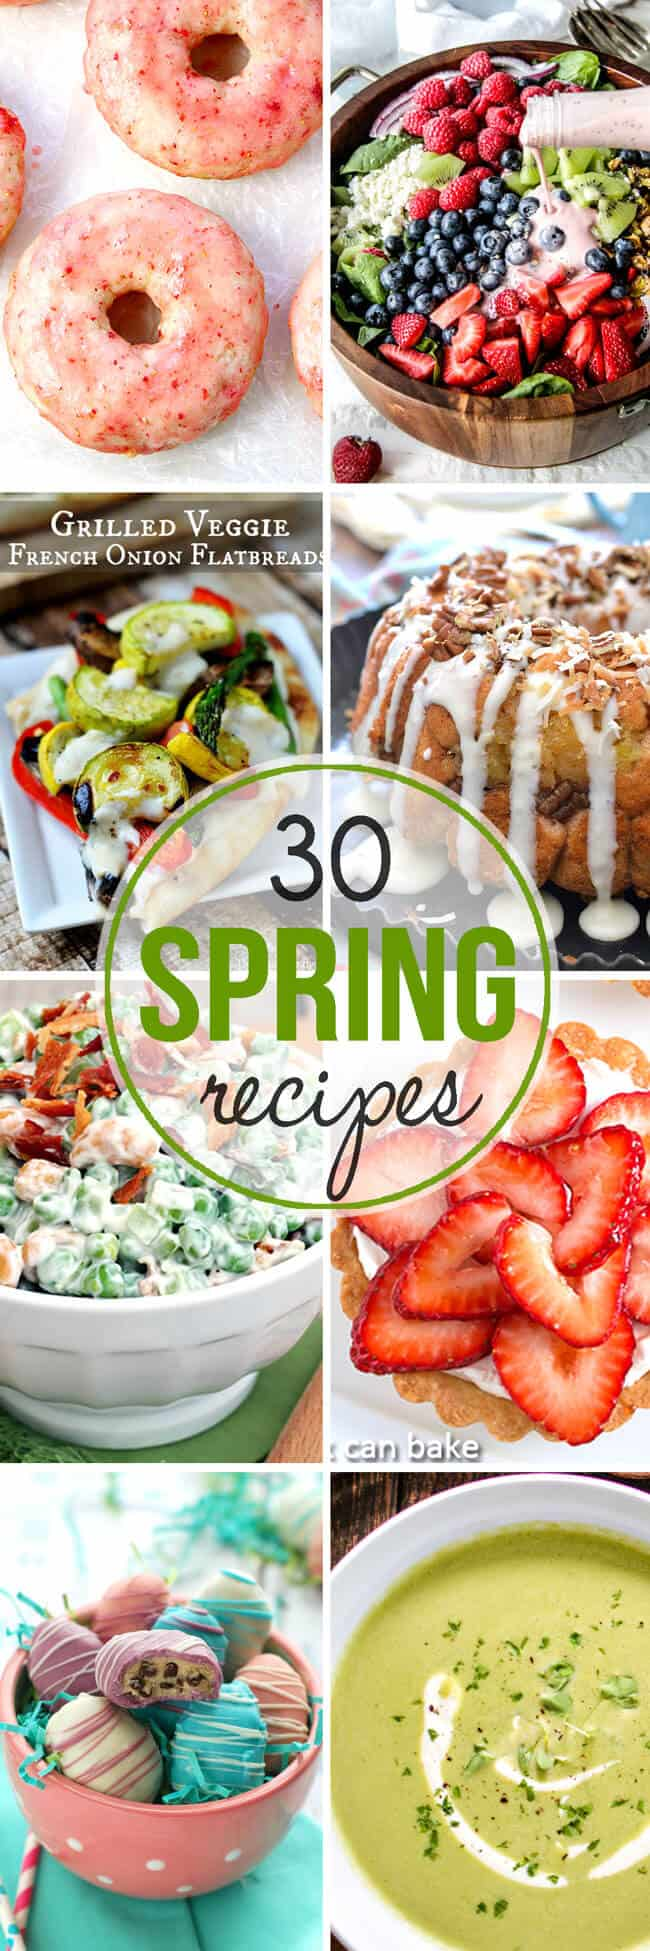 Over 30 Spring Recipes